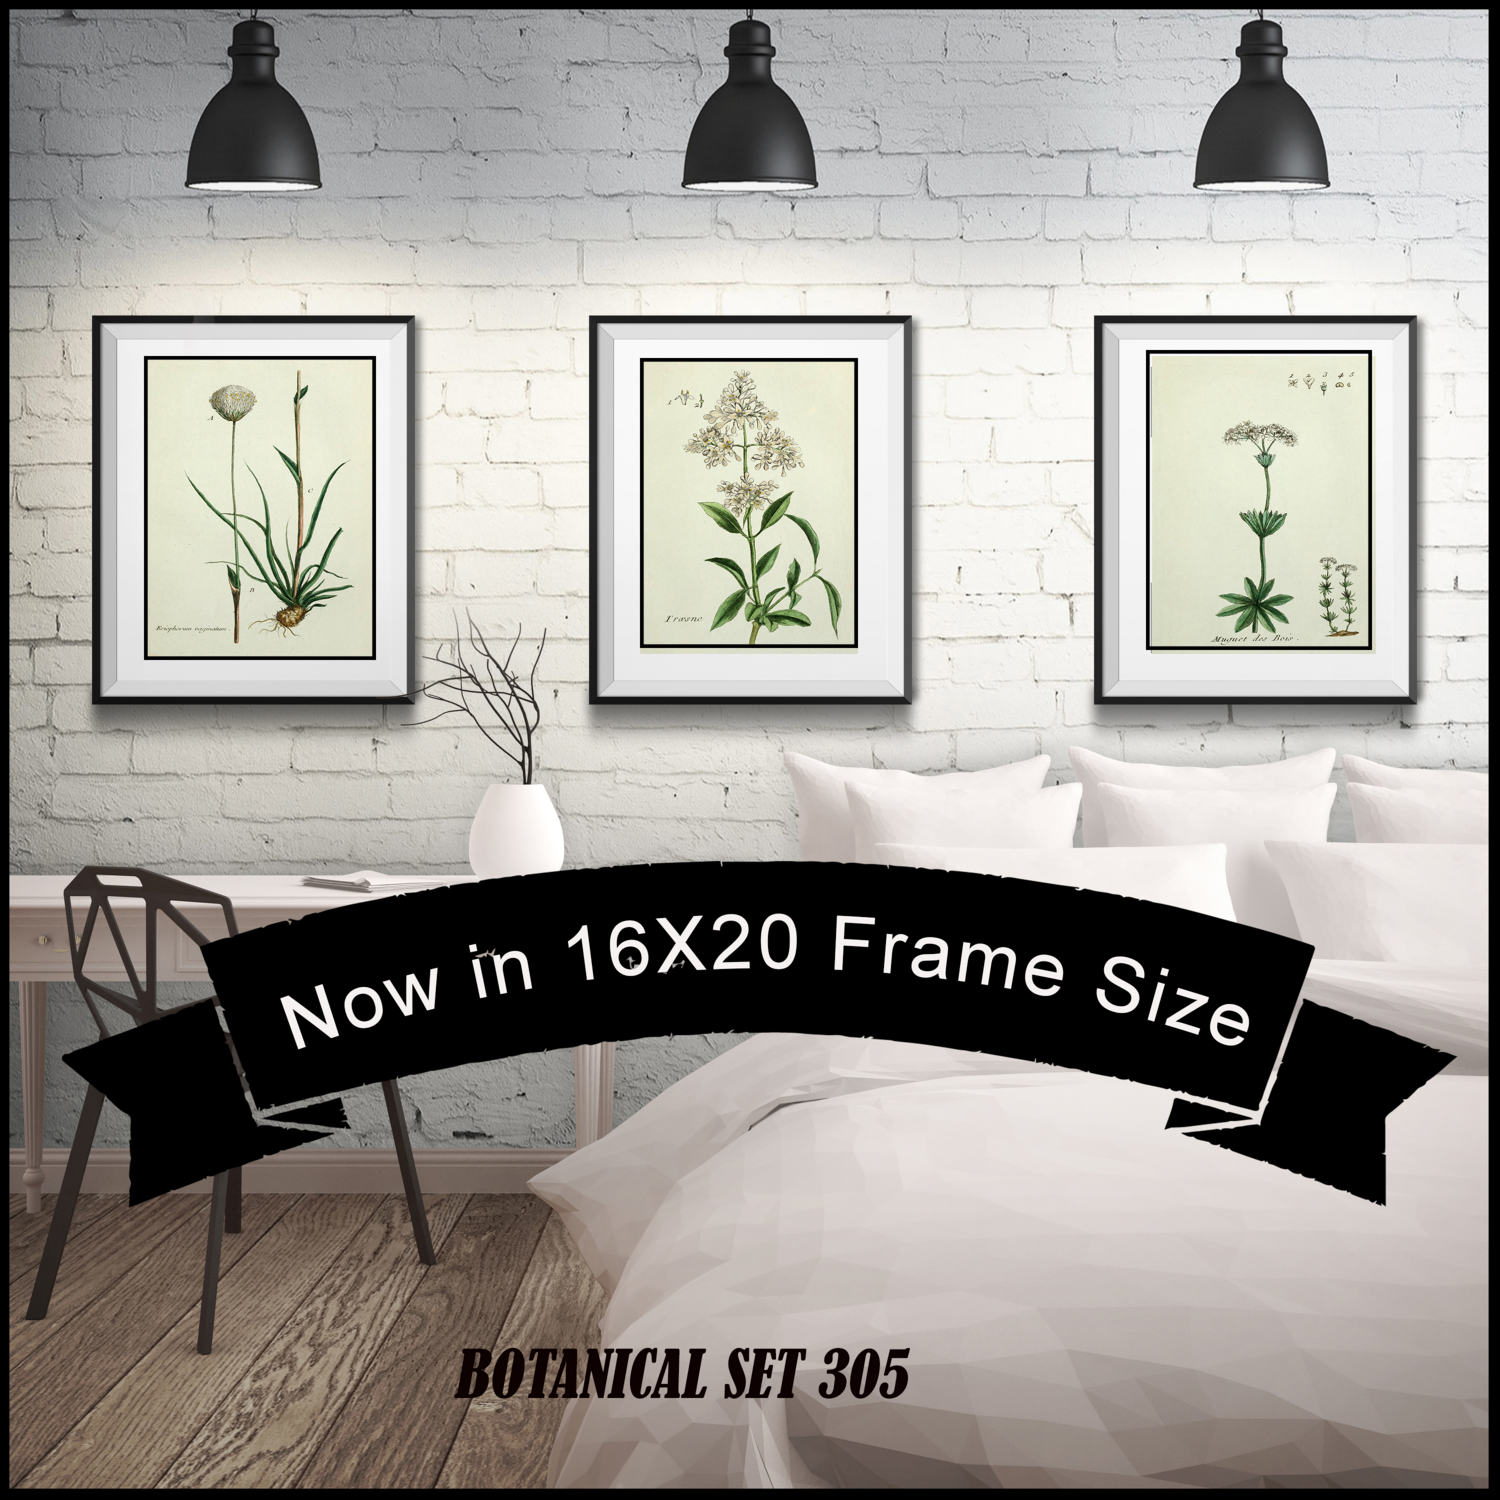 Set of 3 white flower botanical prints matted and framed 16x20 set of 3 white flower botanical prints matted and framed 16x20 frame size free shipping jeuxipadfo Gallery